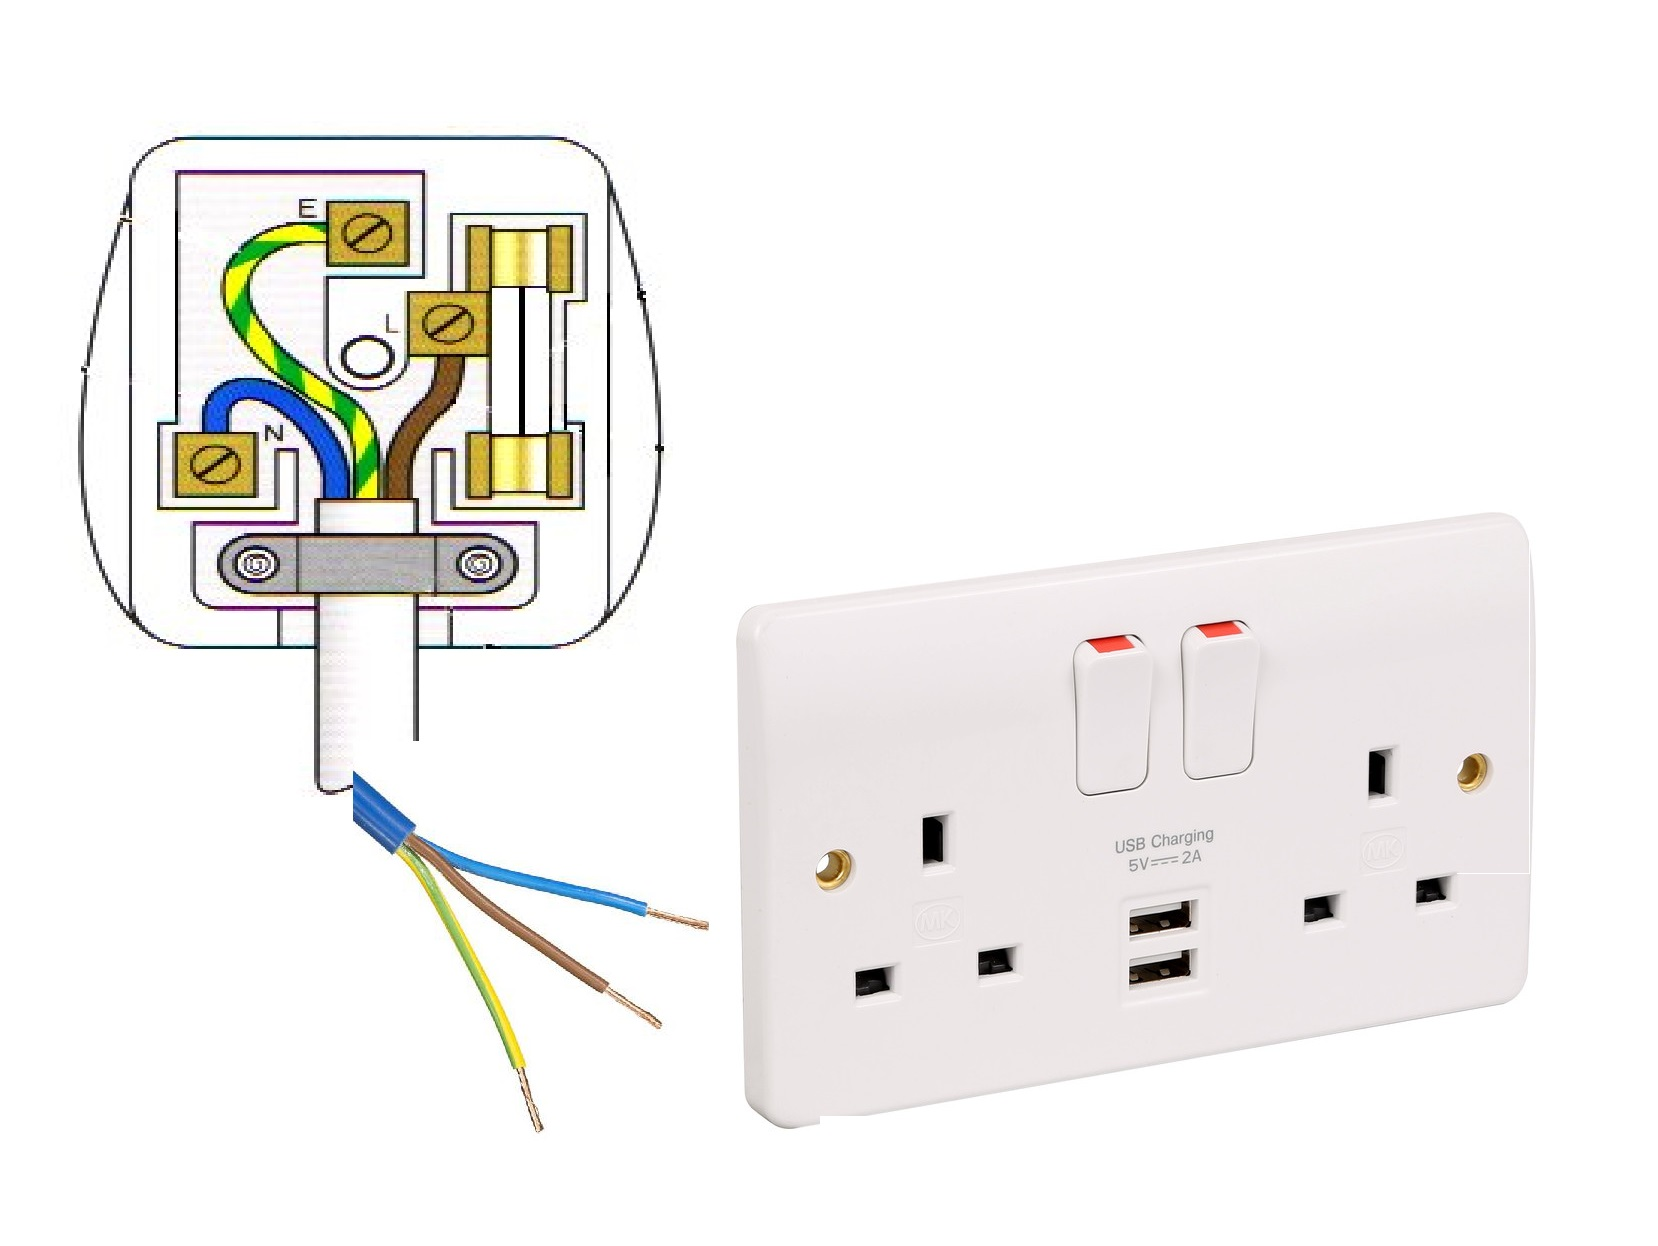 hight resolution of electrical socket wire diagram wiring diagram centre how to wire an outlet plug electric socket wiring